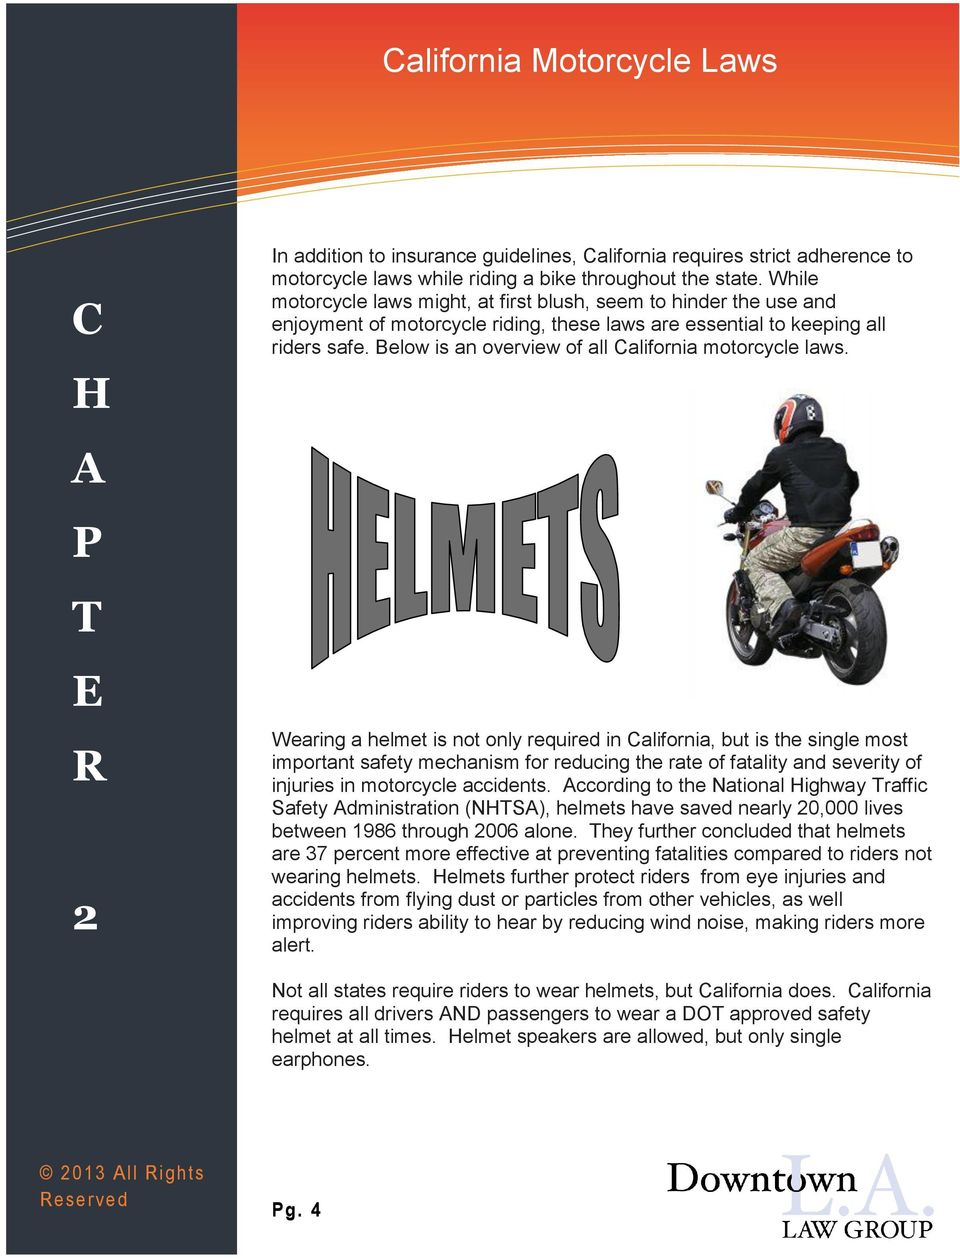 Below is an overview of all California motorcycle laws.